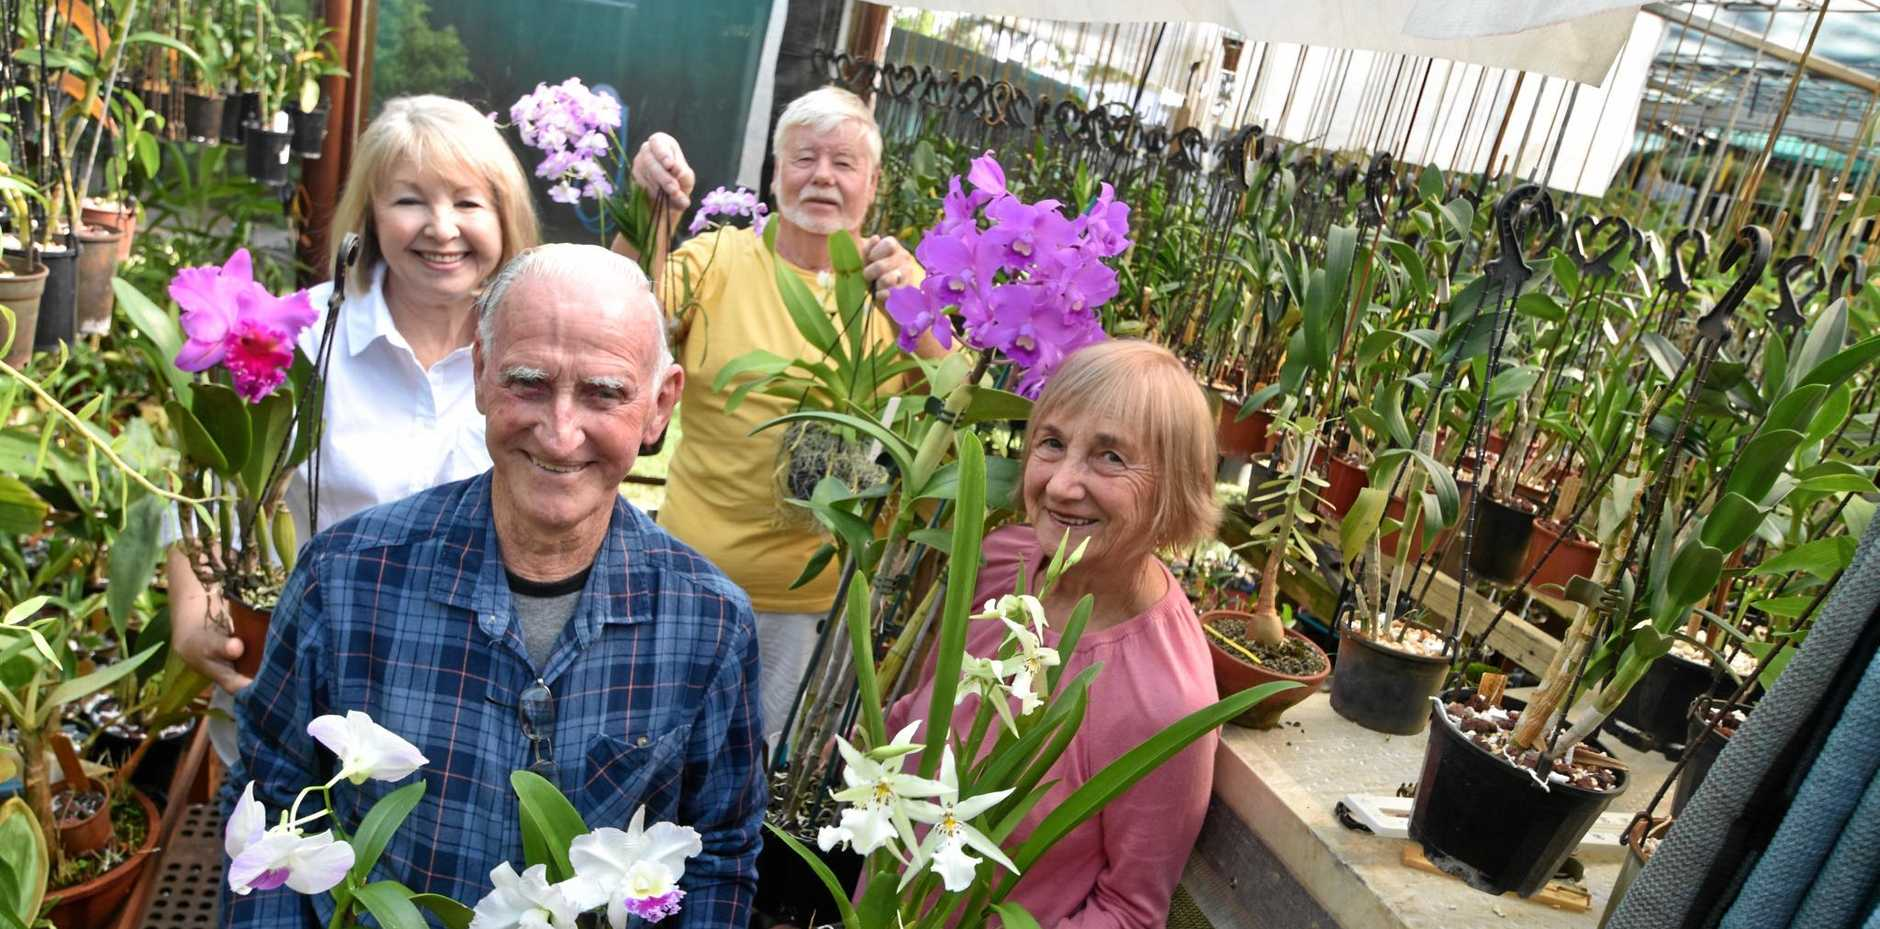 BLOOMIN' LOVELY: Members of Ballina Orchid Society remind people of their Mother's Day Show at Ballina Fair this weekend.